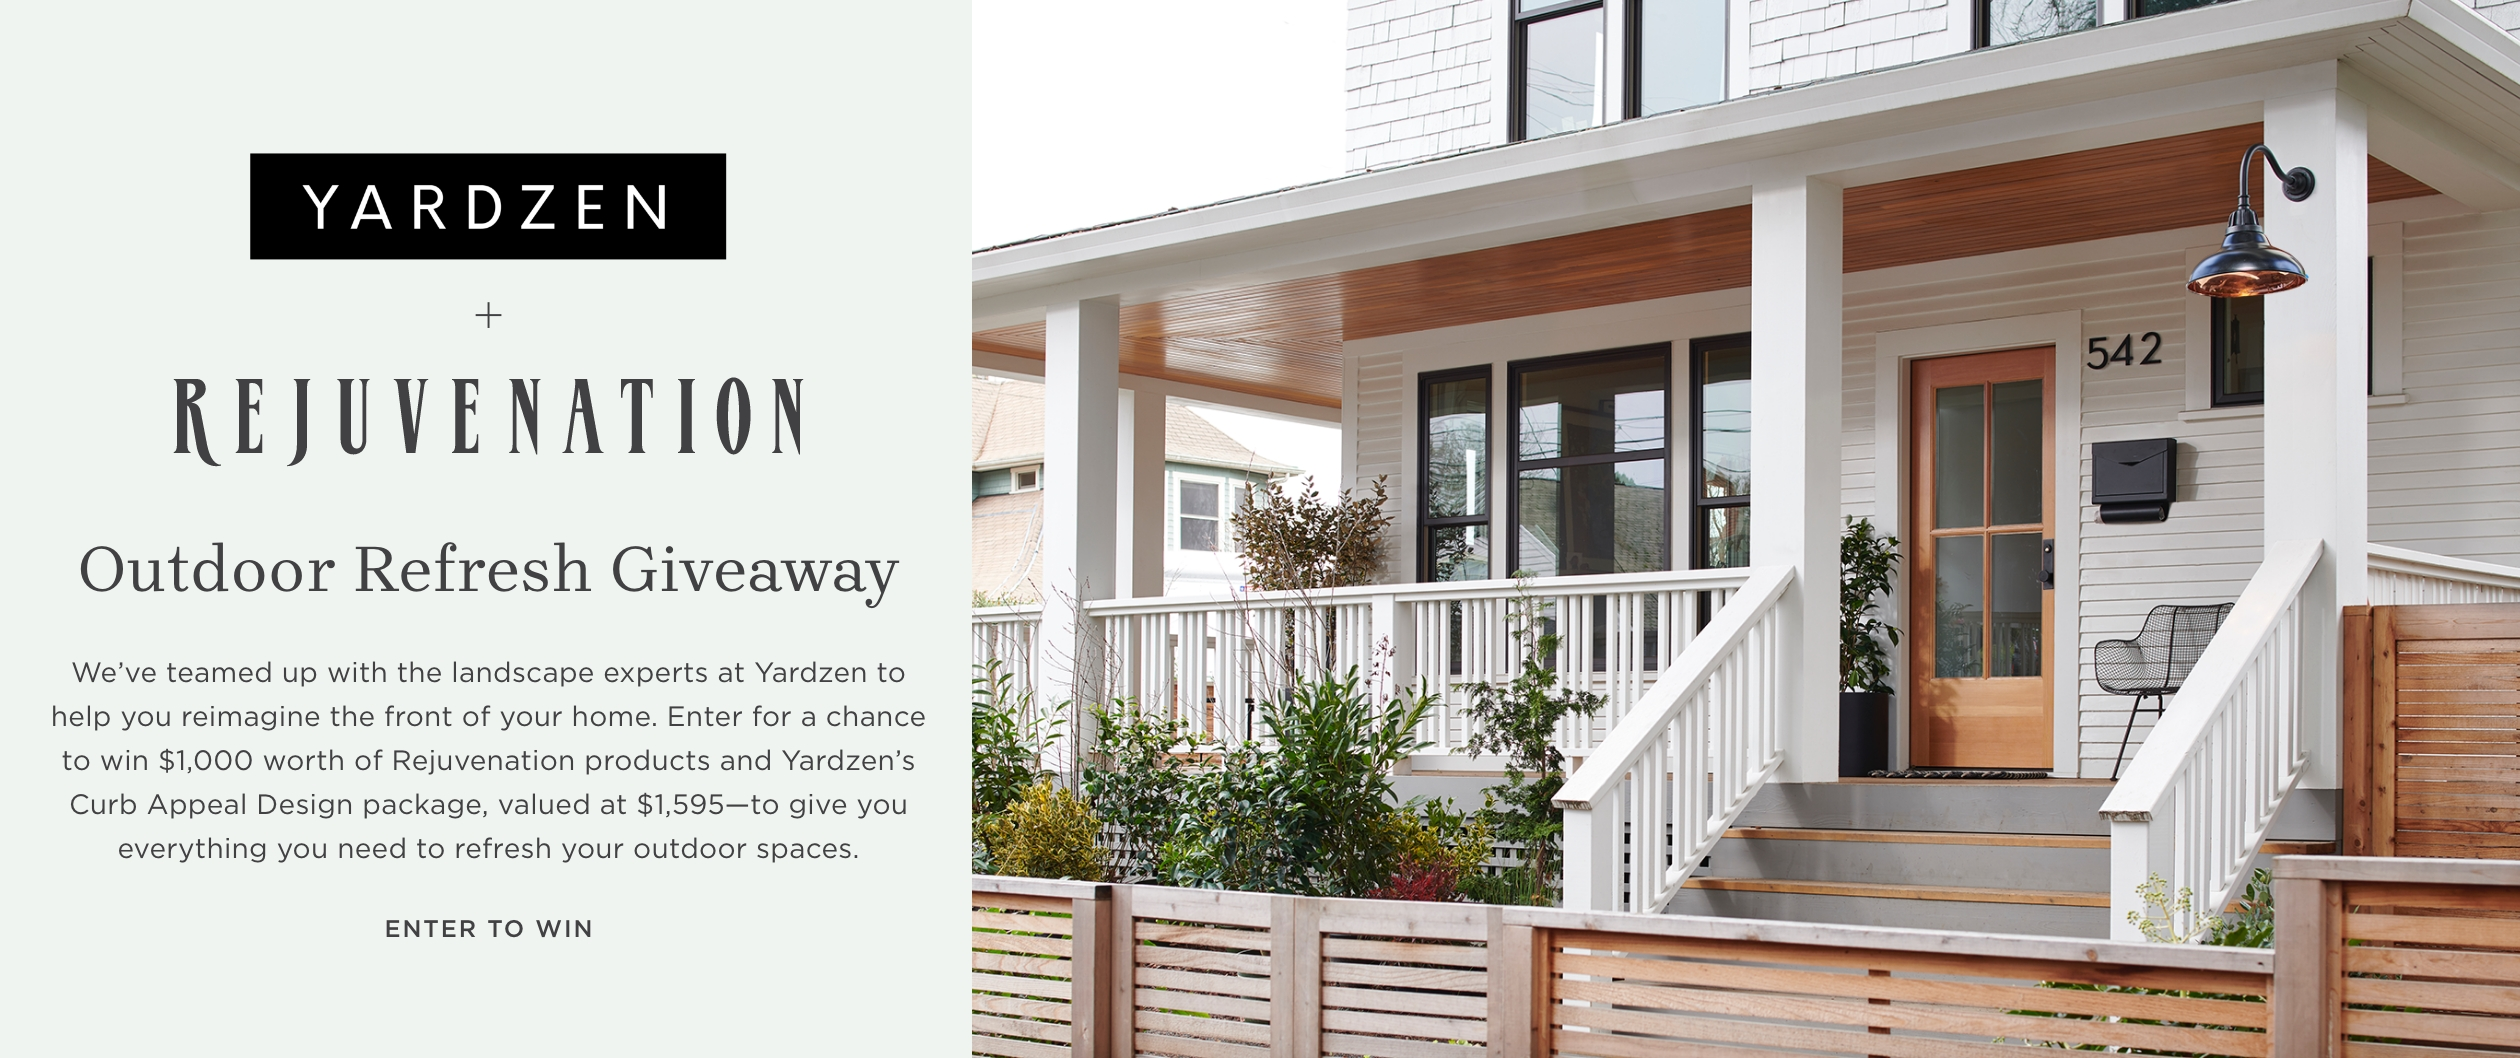 Learn More About Our Outdoor Refresh Giveaway